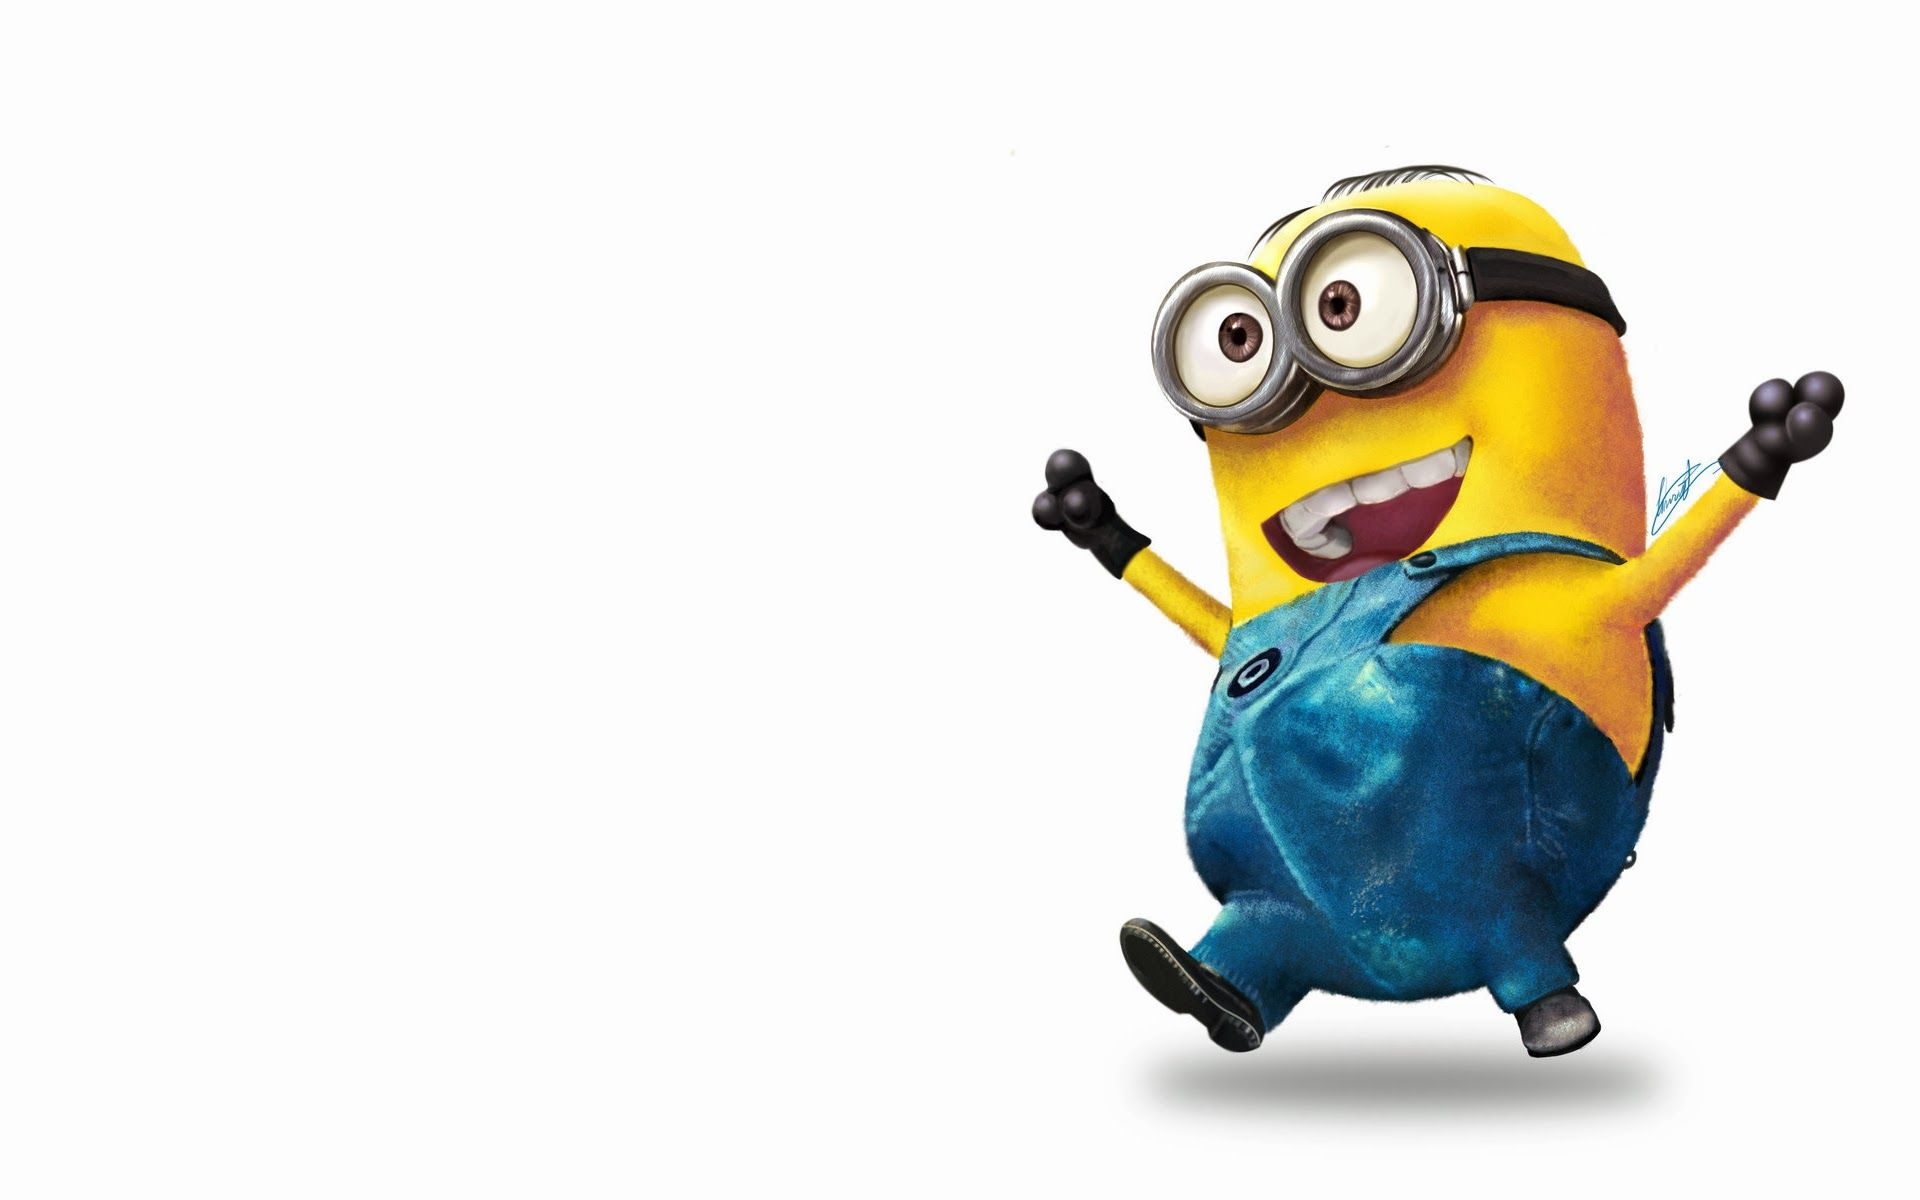 Happy Minion Wallpapers Top Free Happy Minion Backgrounds